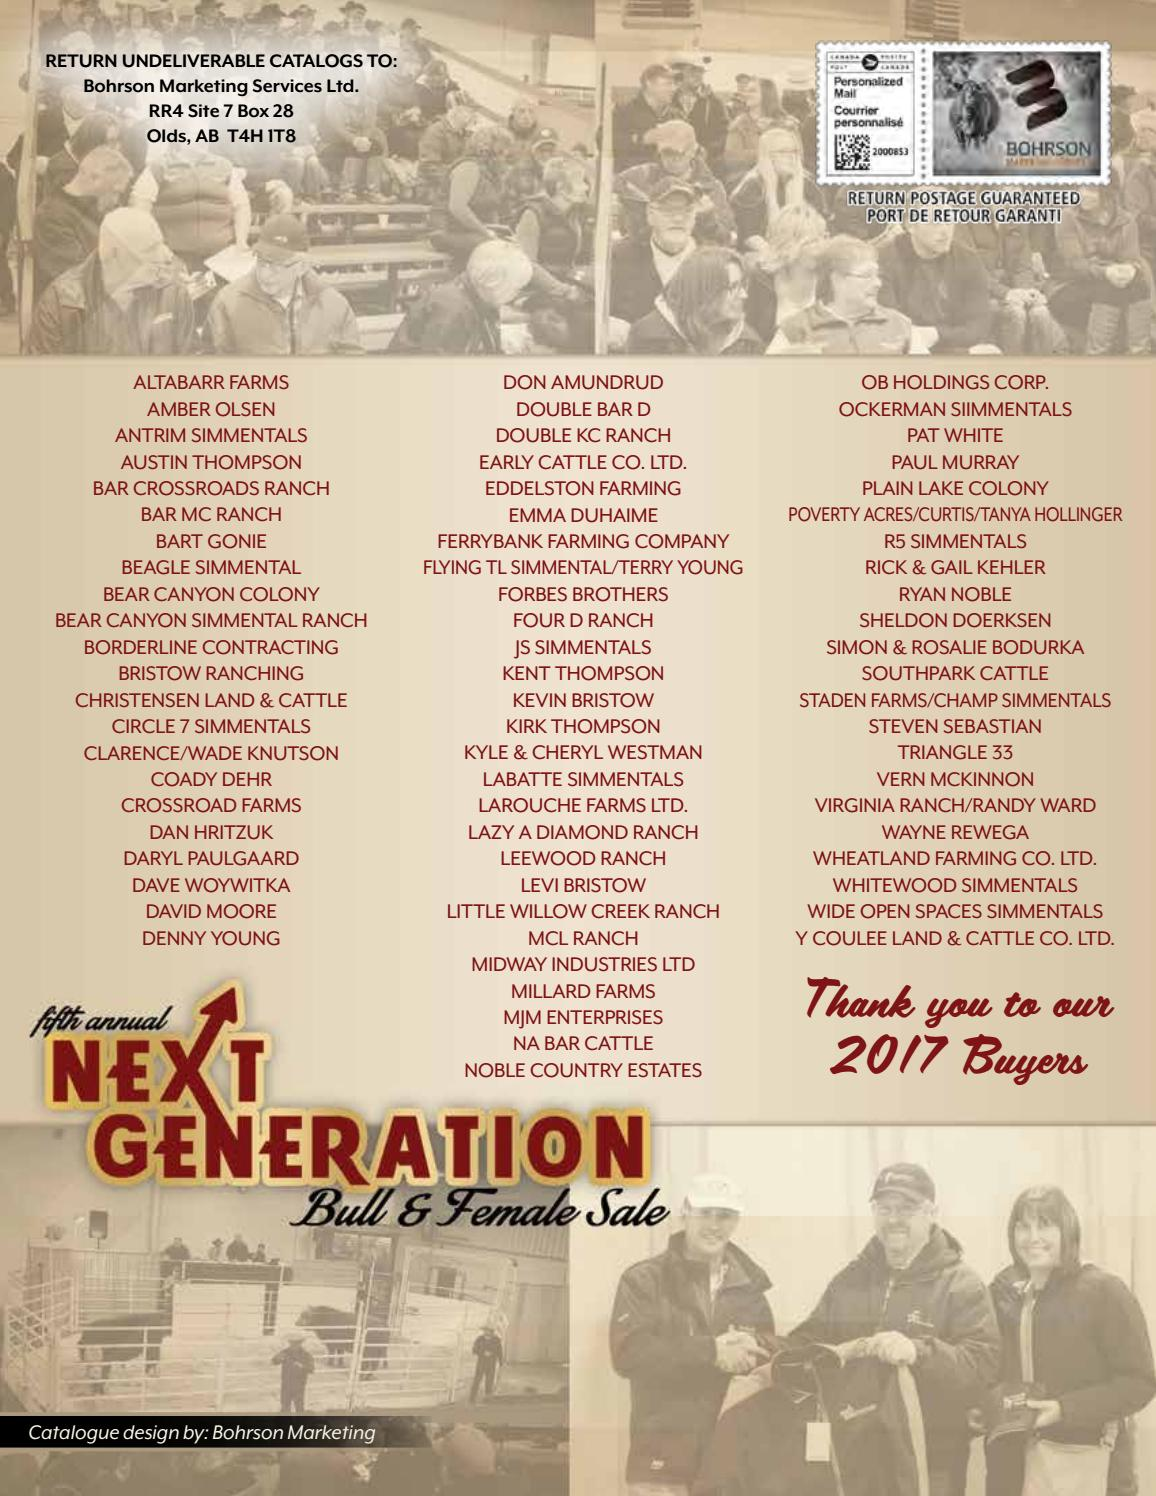 5th Annual Next Generation Bull & Female Sale by Today's Publishing